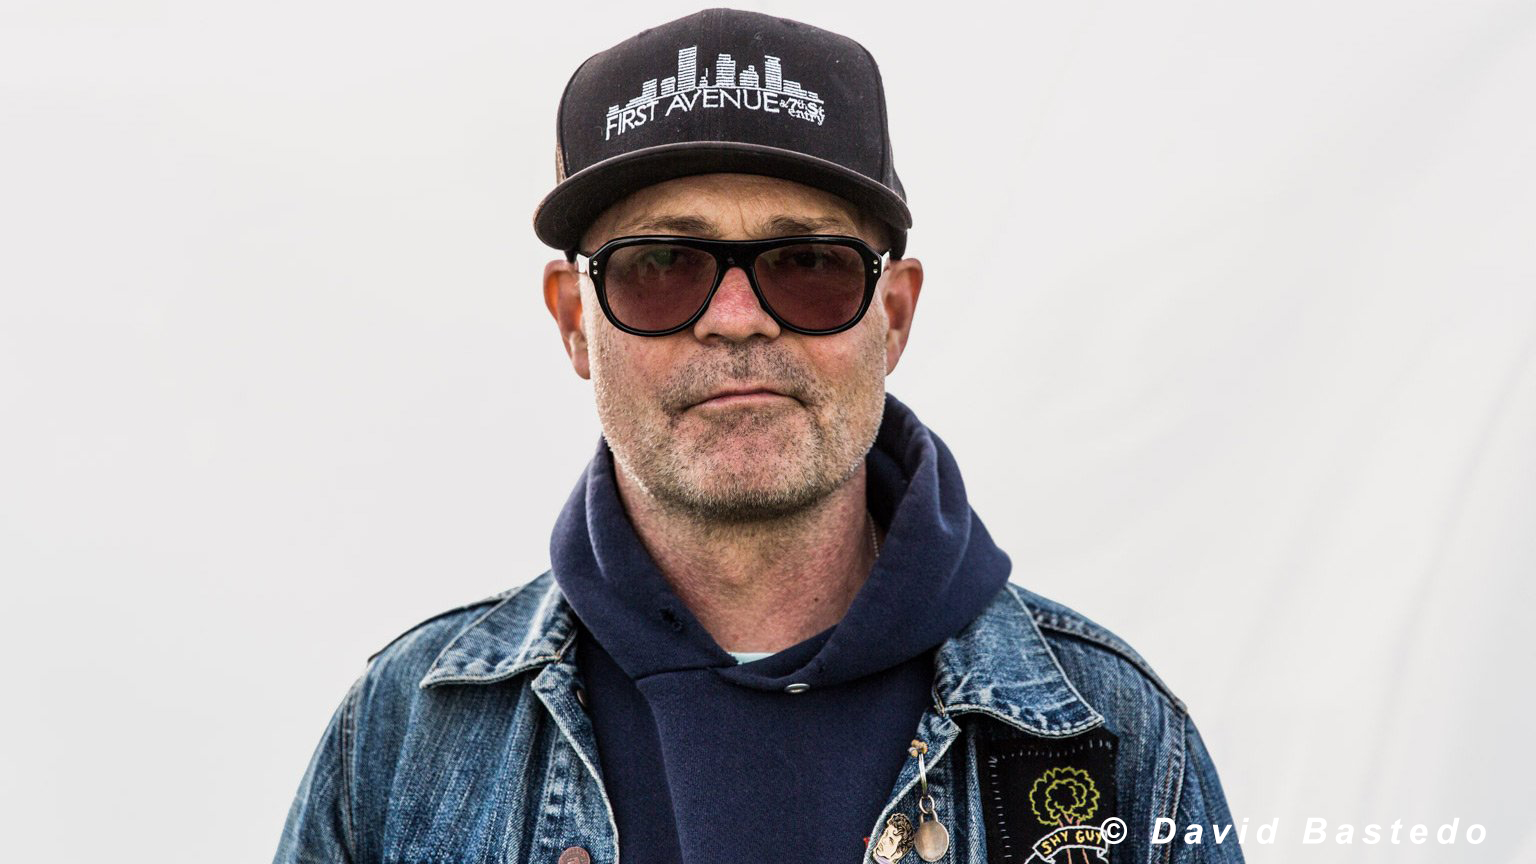 The Gord Downie Collection